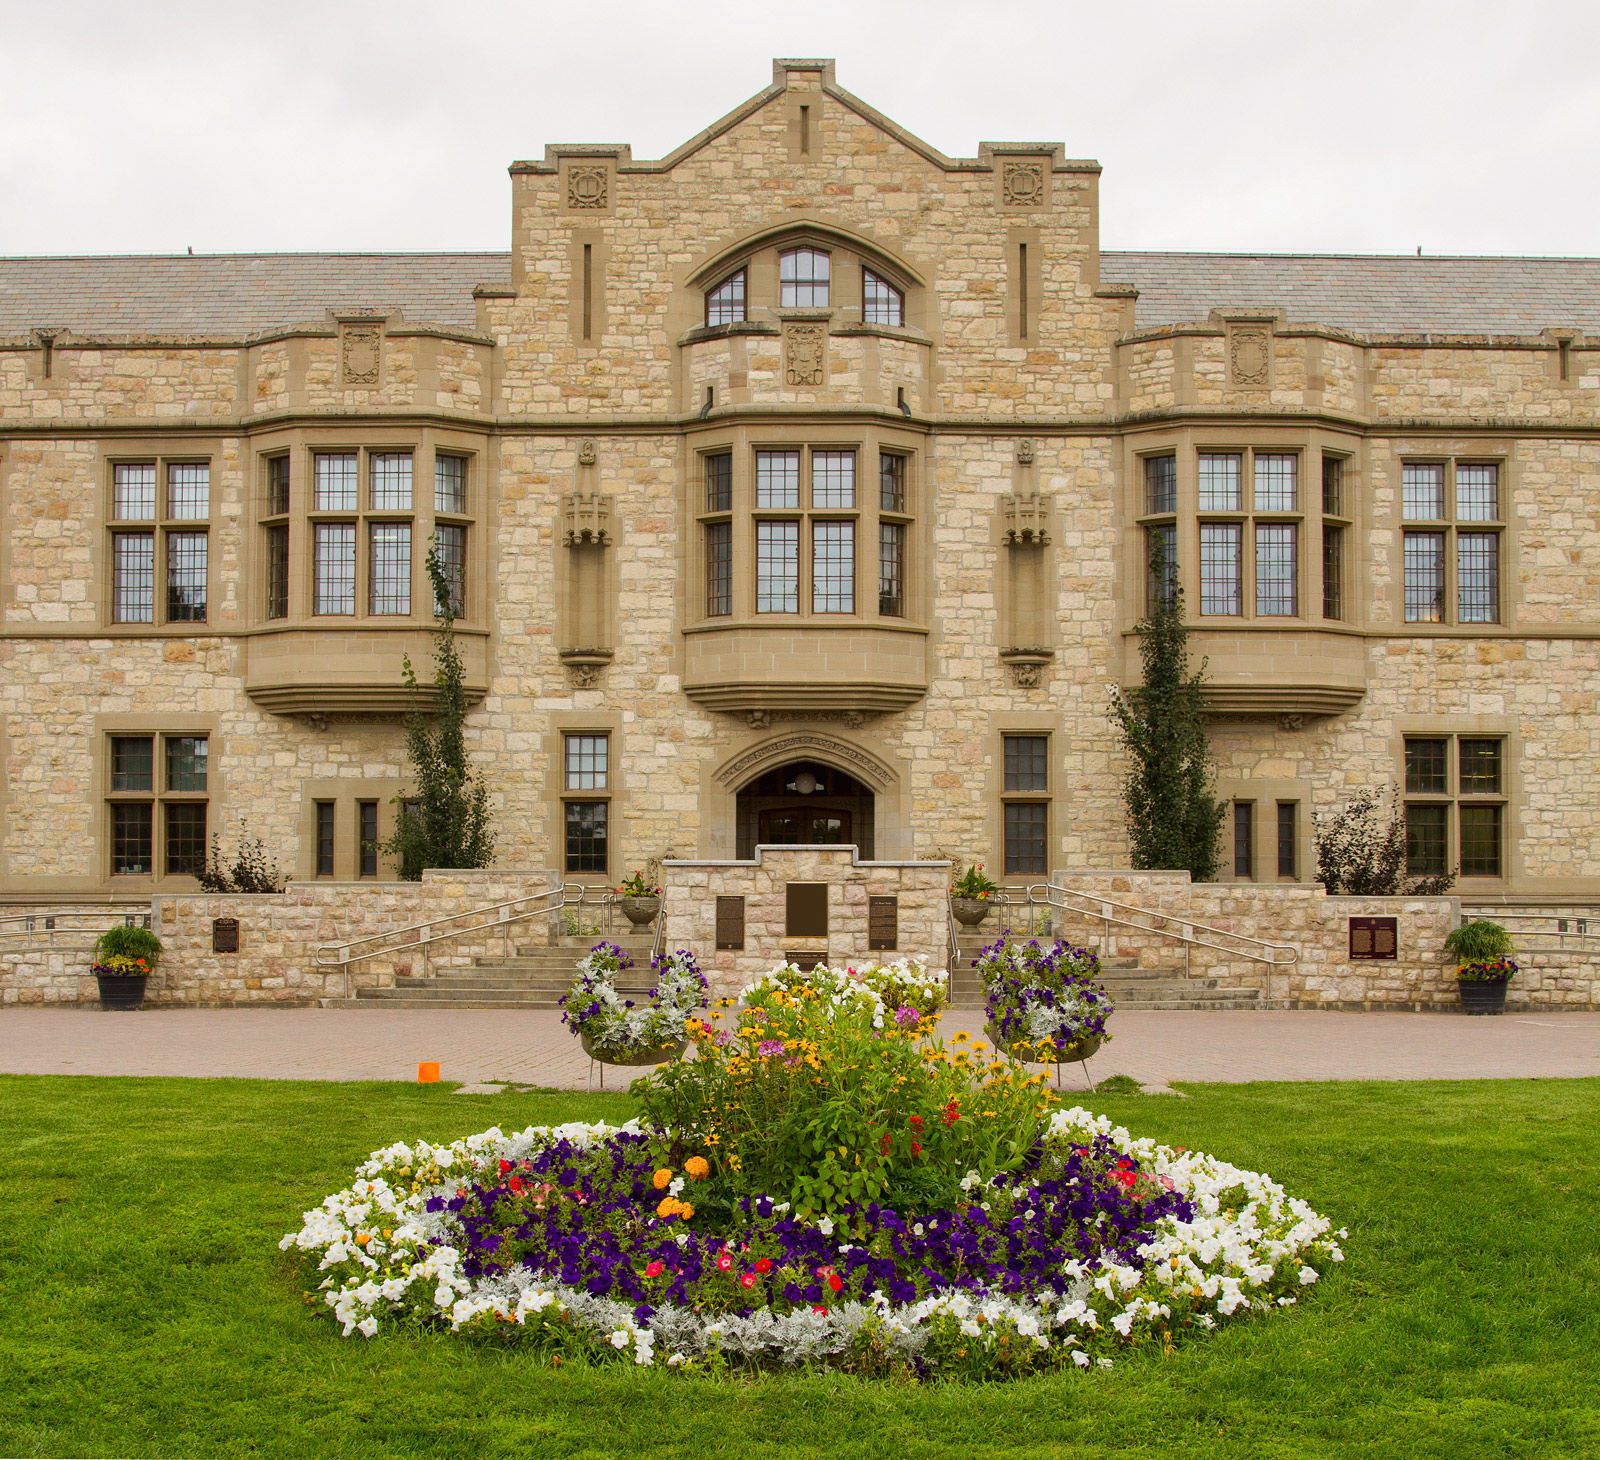 Explore the campus of the University of Saskatchewan when you stay at one of the best Saskatoon hotels for students and their families.